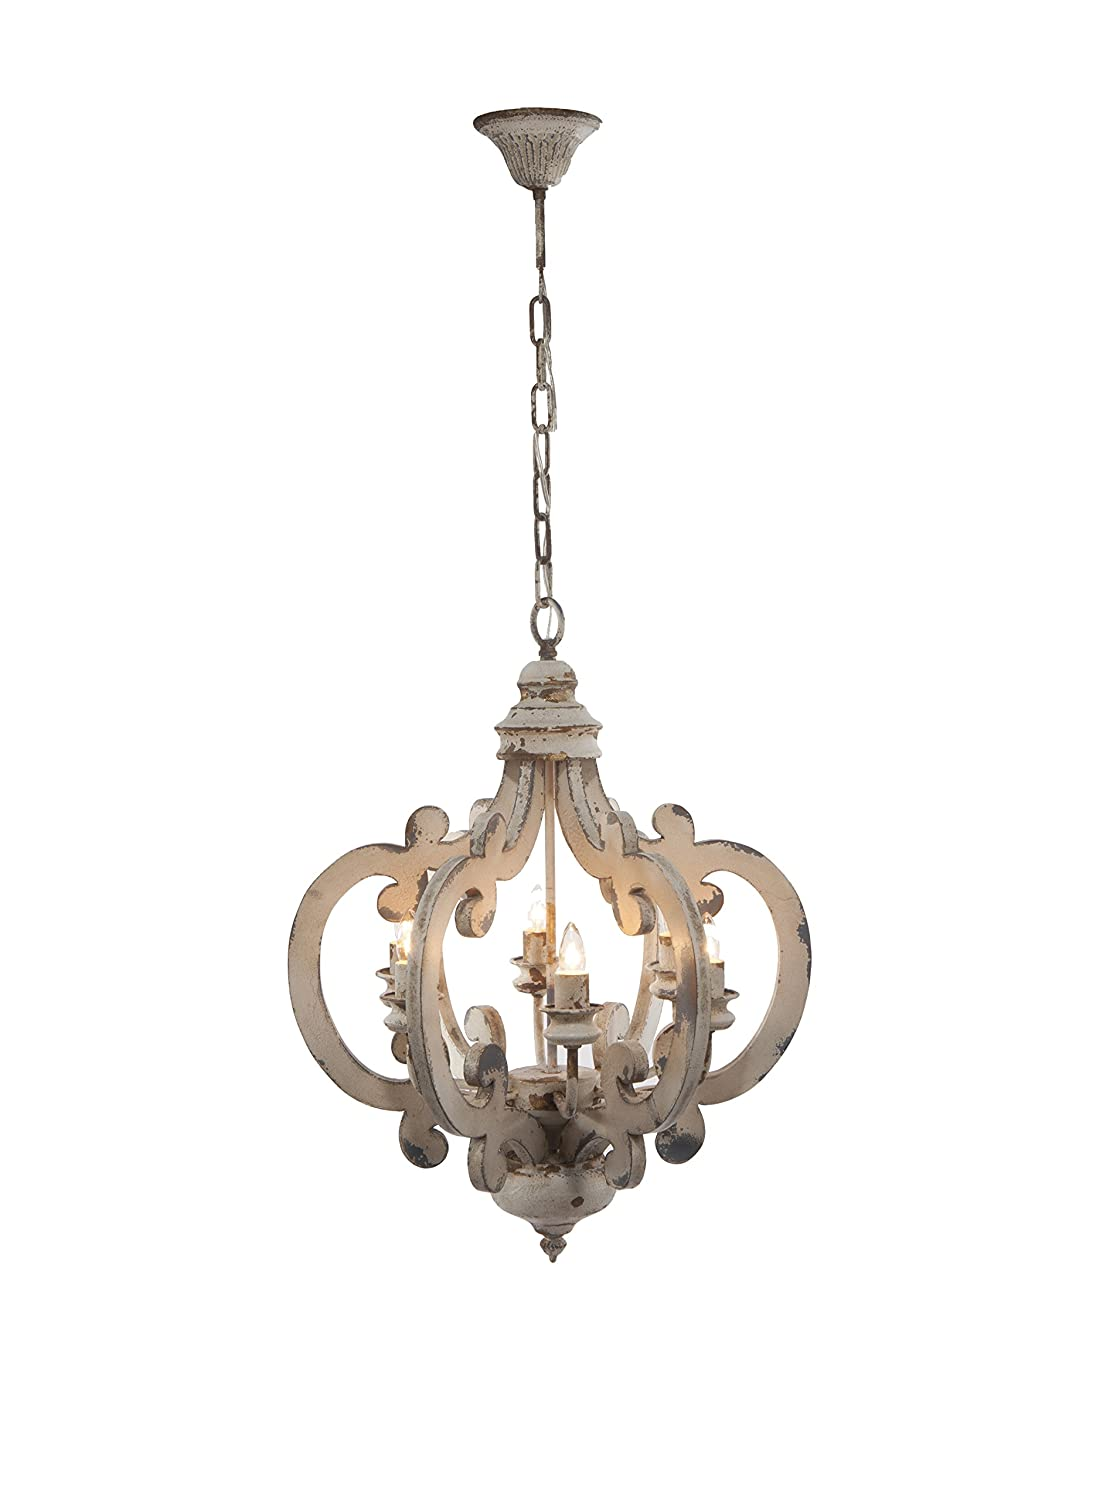 Amazon wood metal chandelier 1925 x 25 beautiful antique amazon wood metal chandelier 1925 x 25 beautiful antique chandelier vintage chandelier hanging chandelier home kitchen mozeypictures Image collections